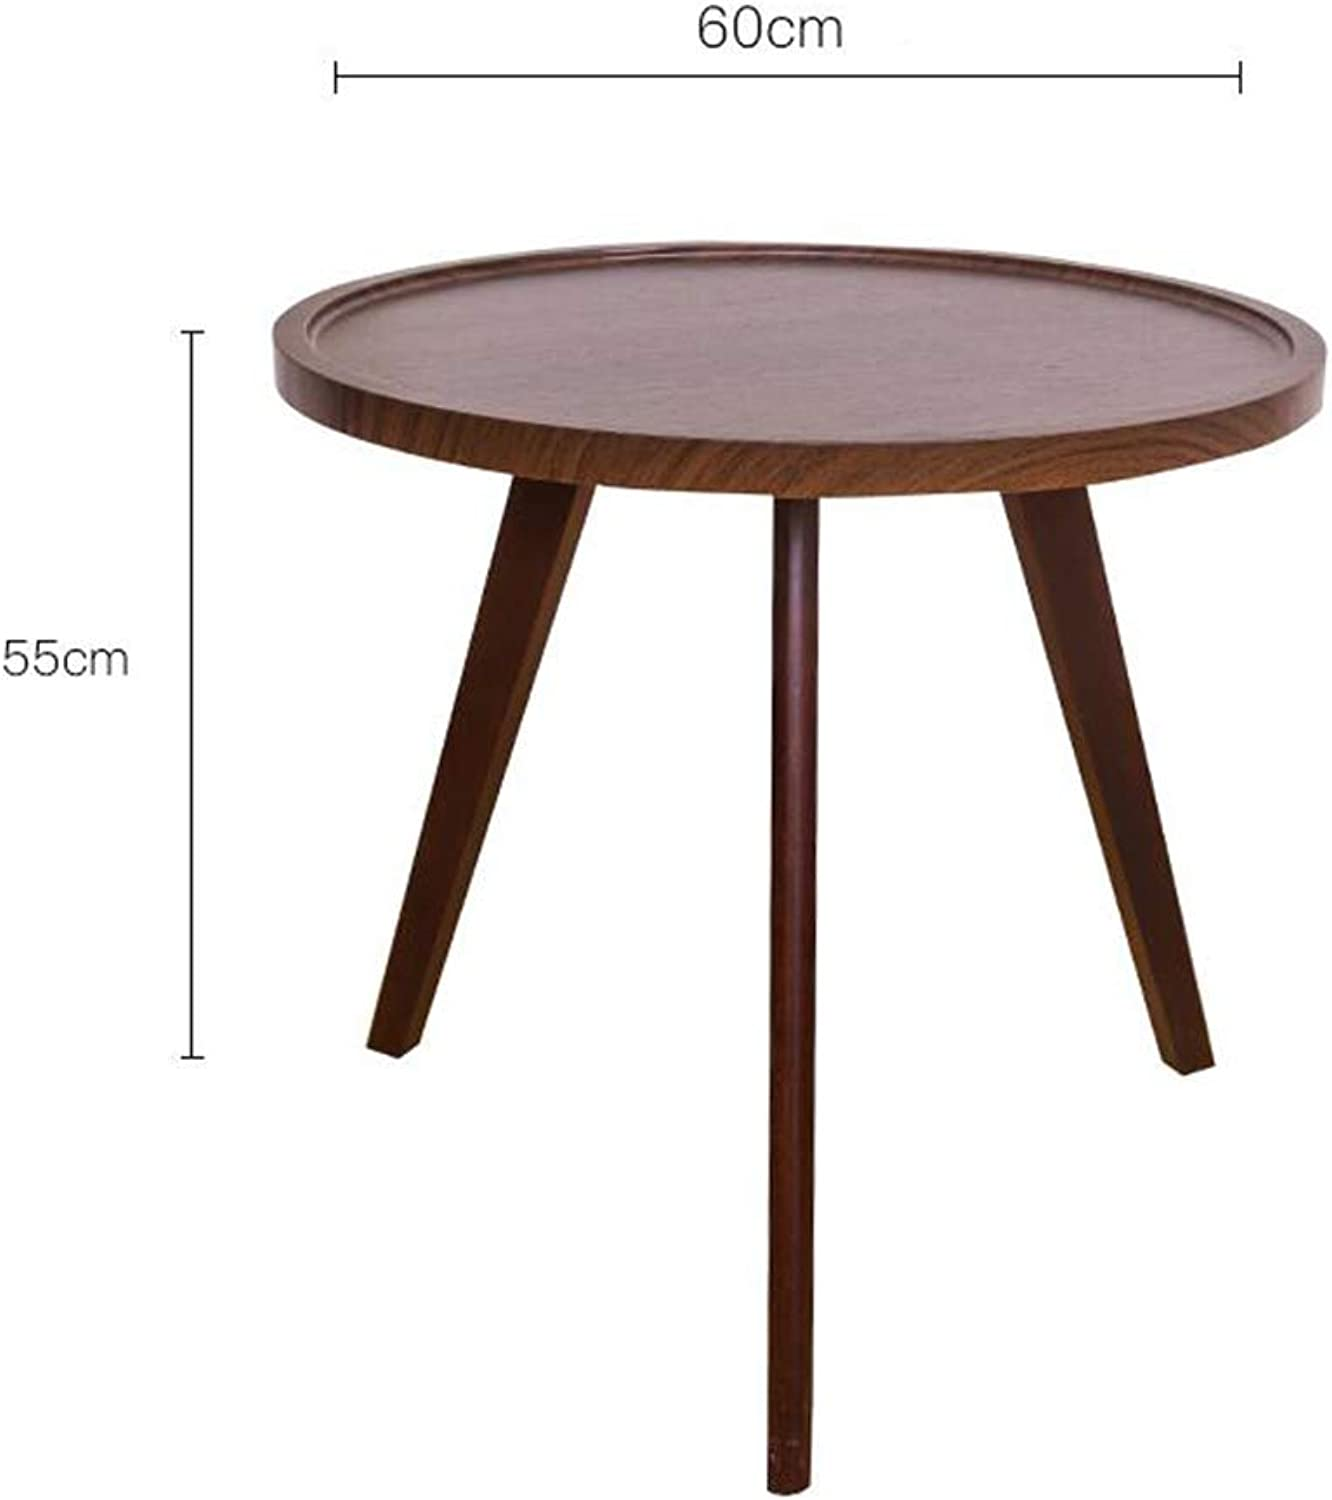 Coffee Table Living Room Sofa Side Table Breakfast Table Garden Table (color   B, Size   40  40  45cm)